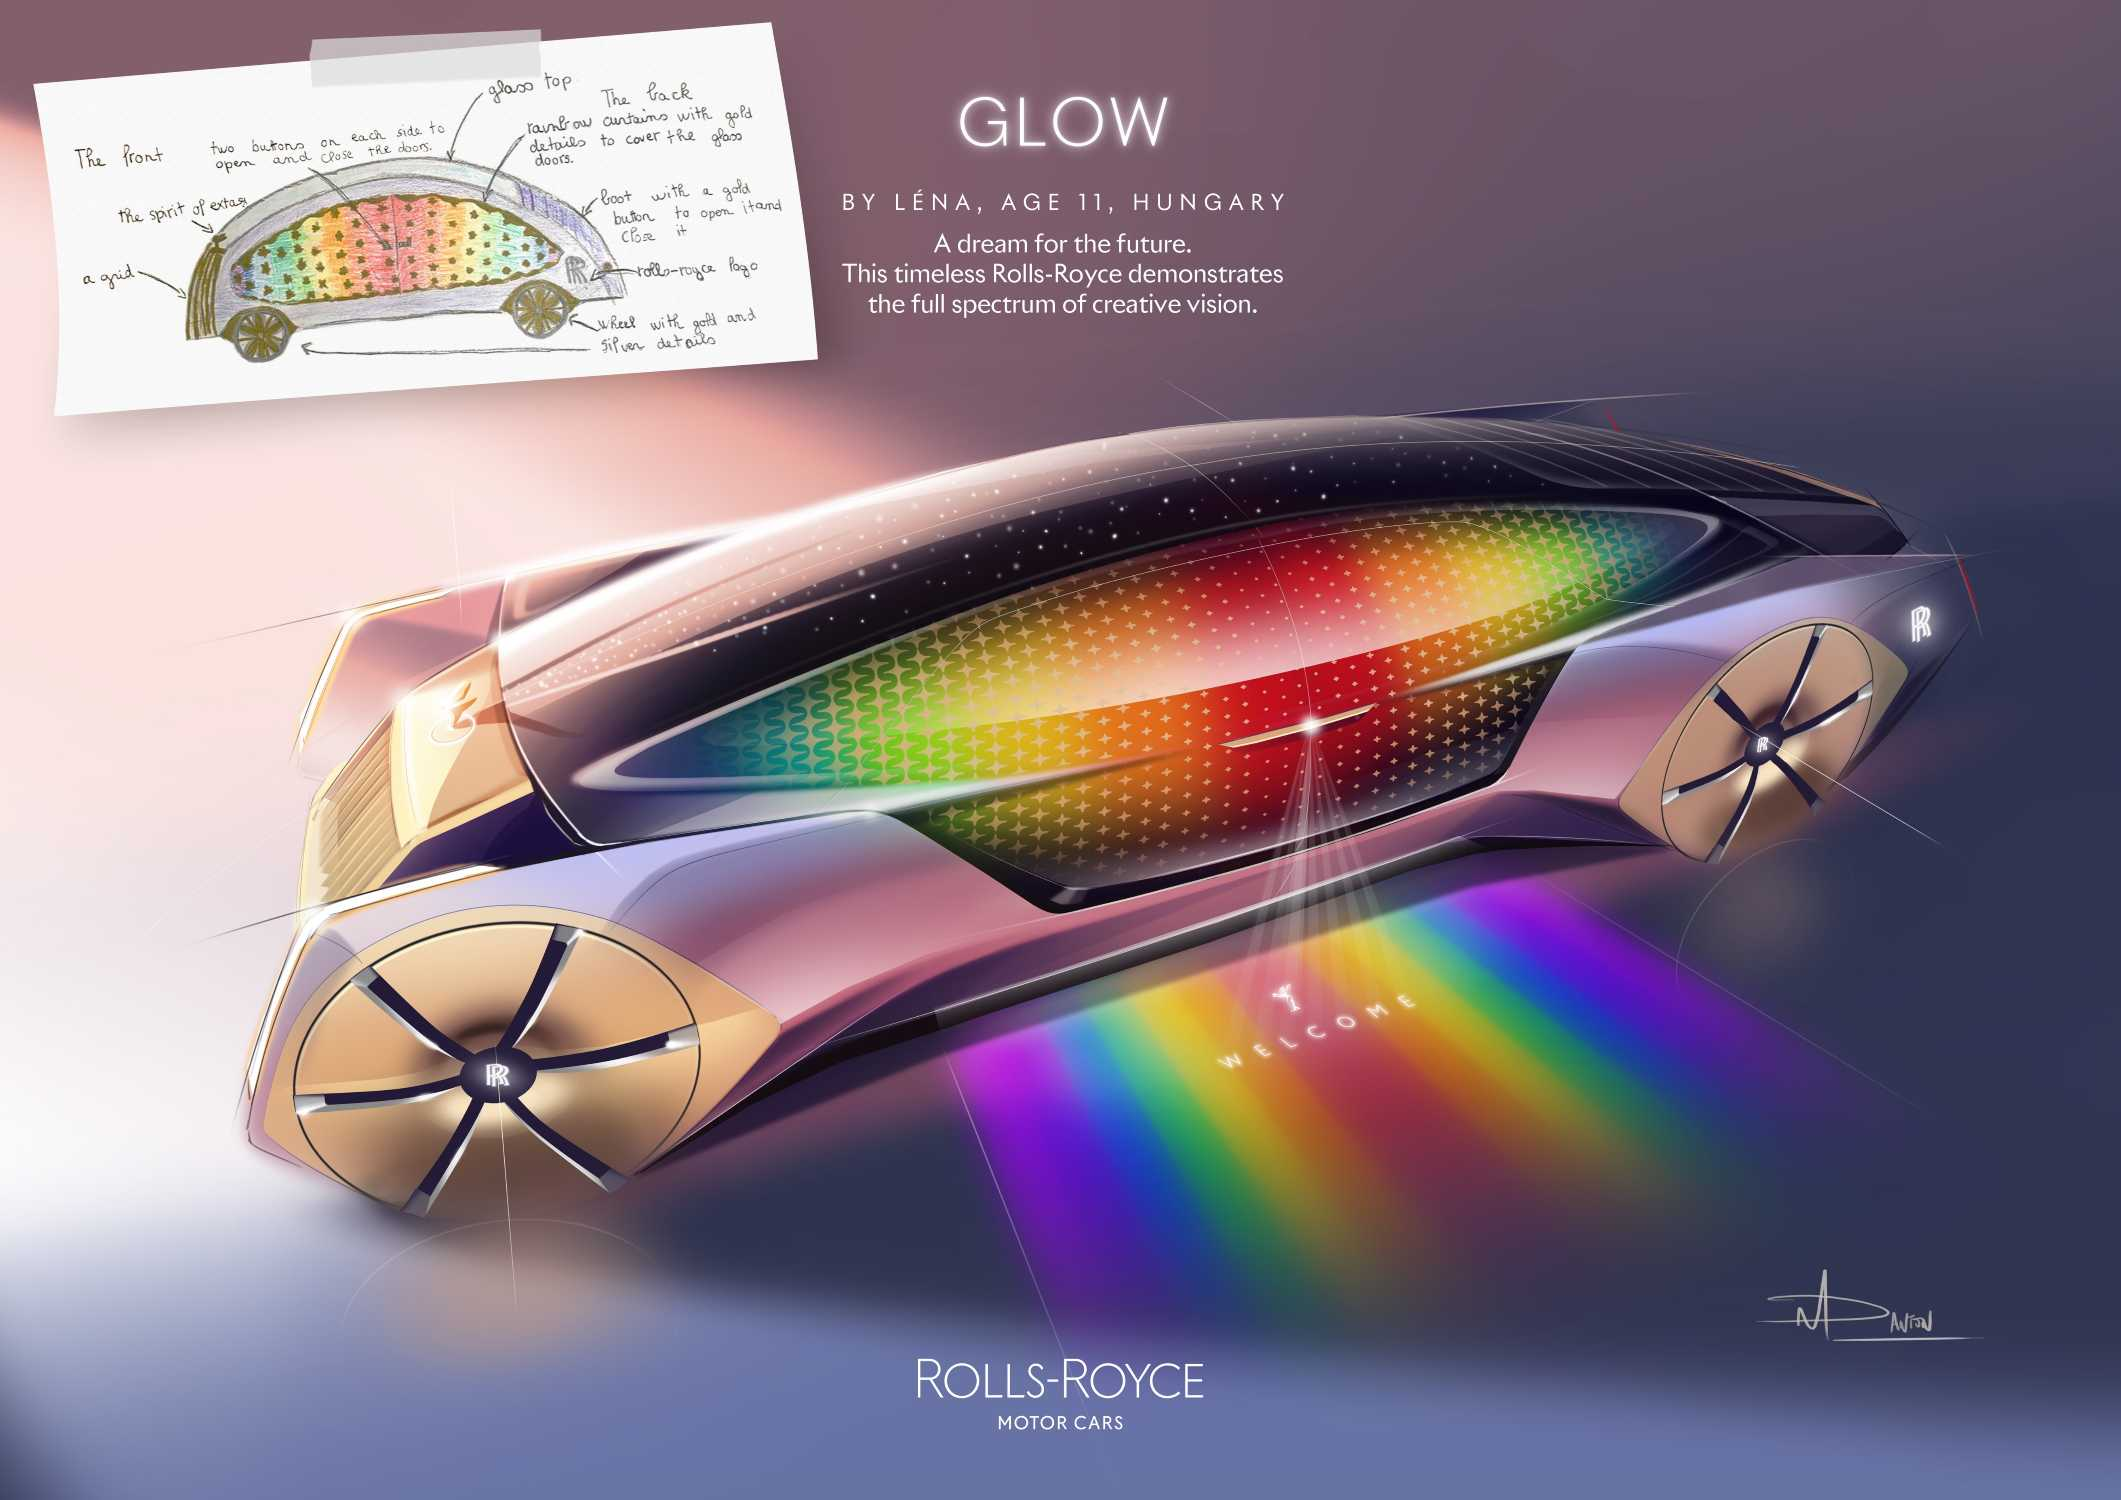 ROLLS-ROYCE GLOW BY LÉNA, AGE 11, HUNGARY. FUN CATEGORY WINNER IN THE ROLLS-ROYCE YOUNG DESIGNER COMPETITION.